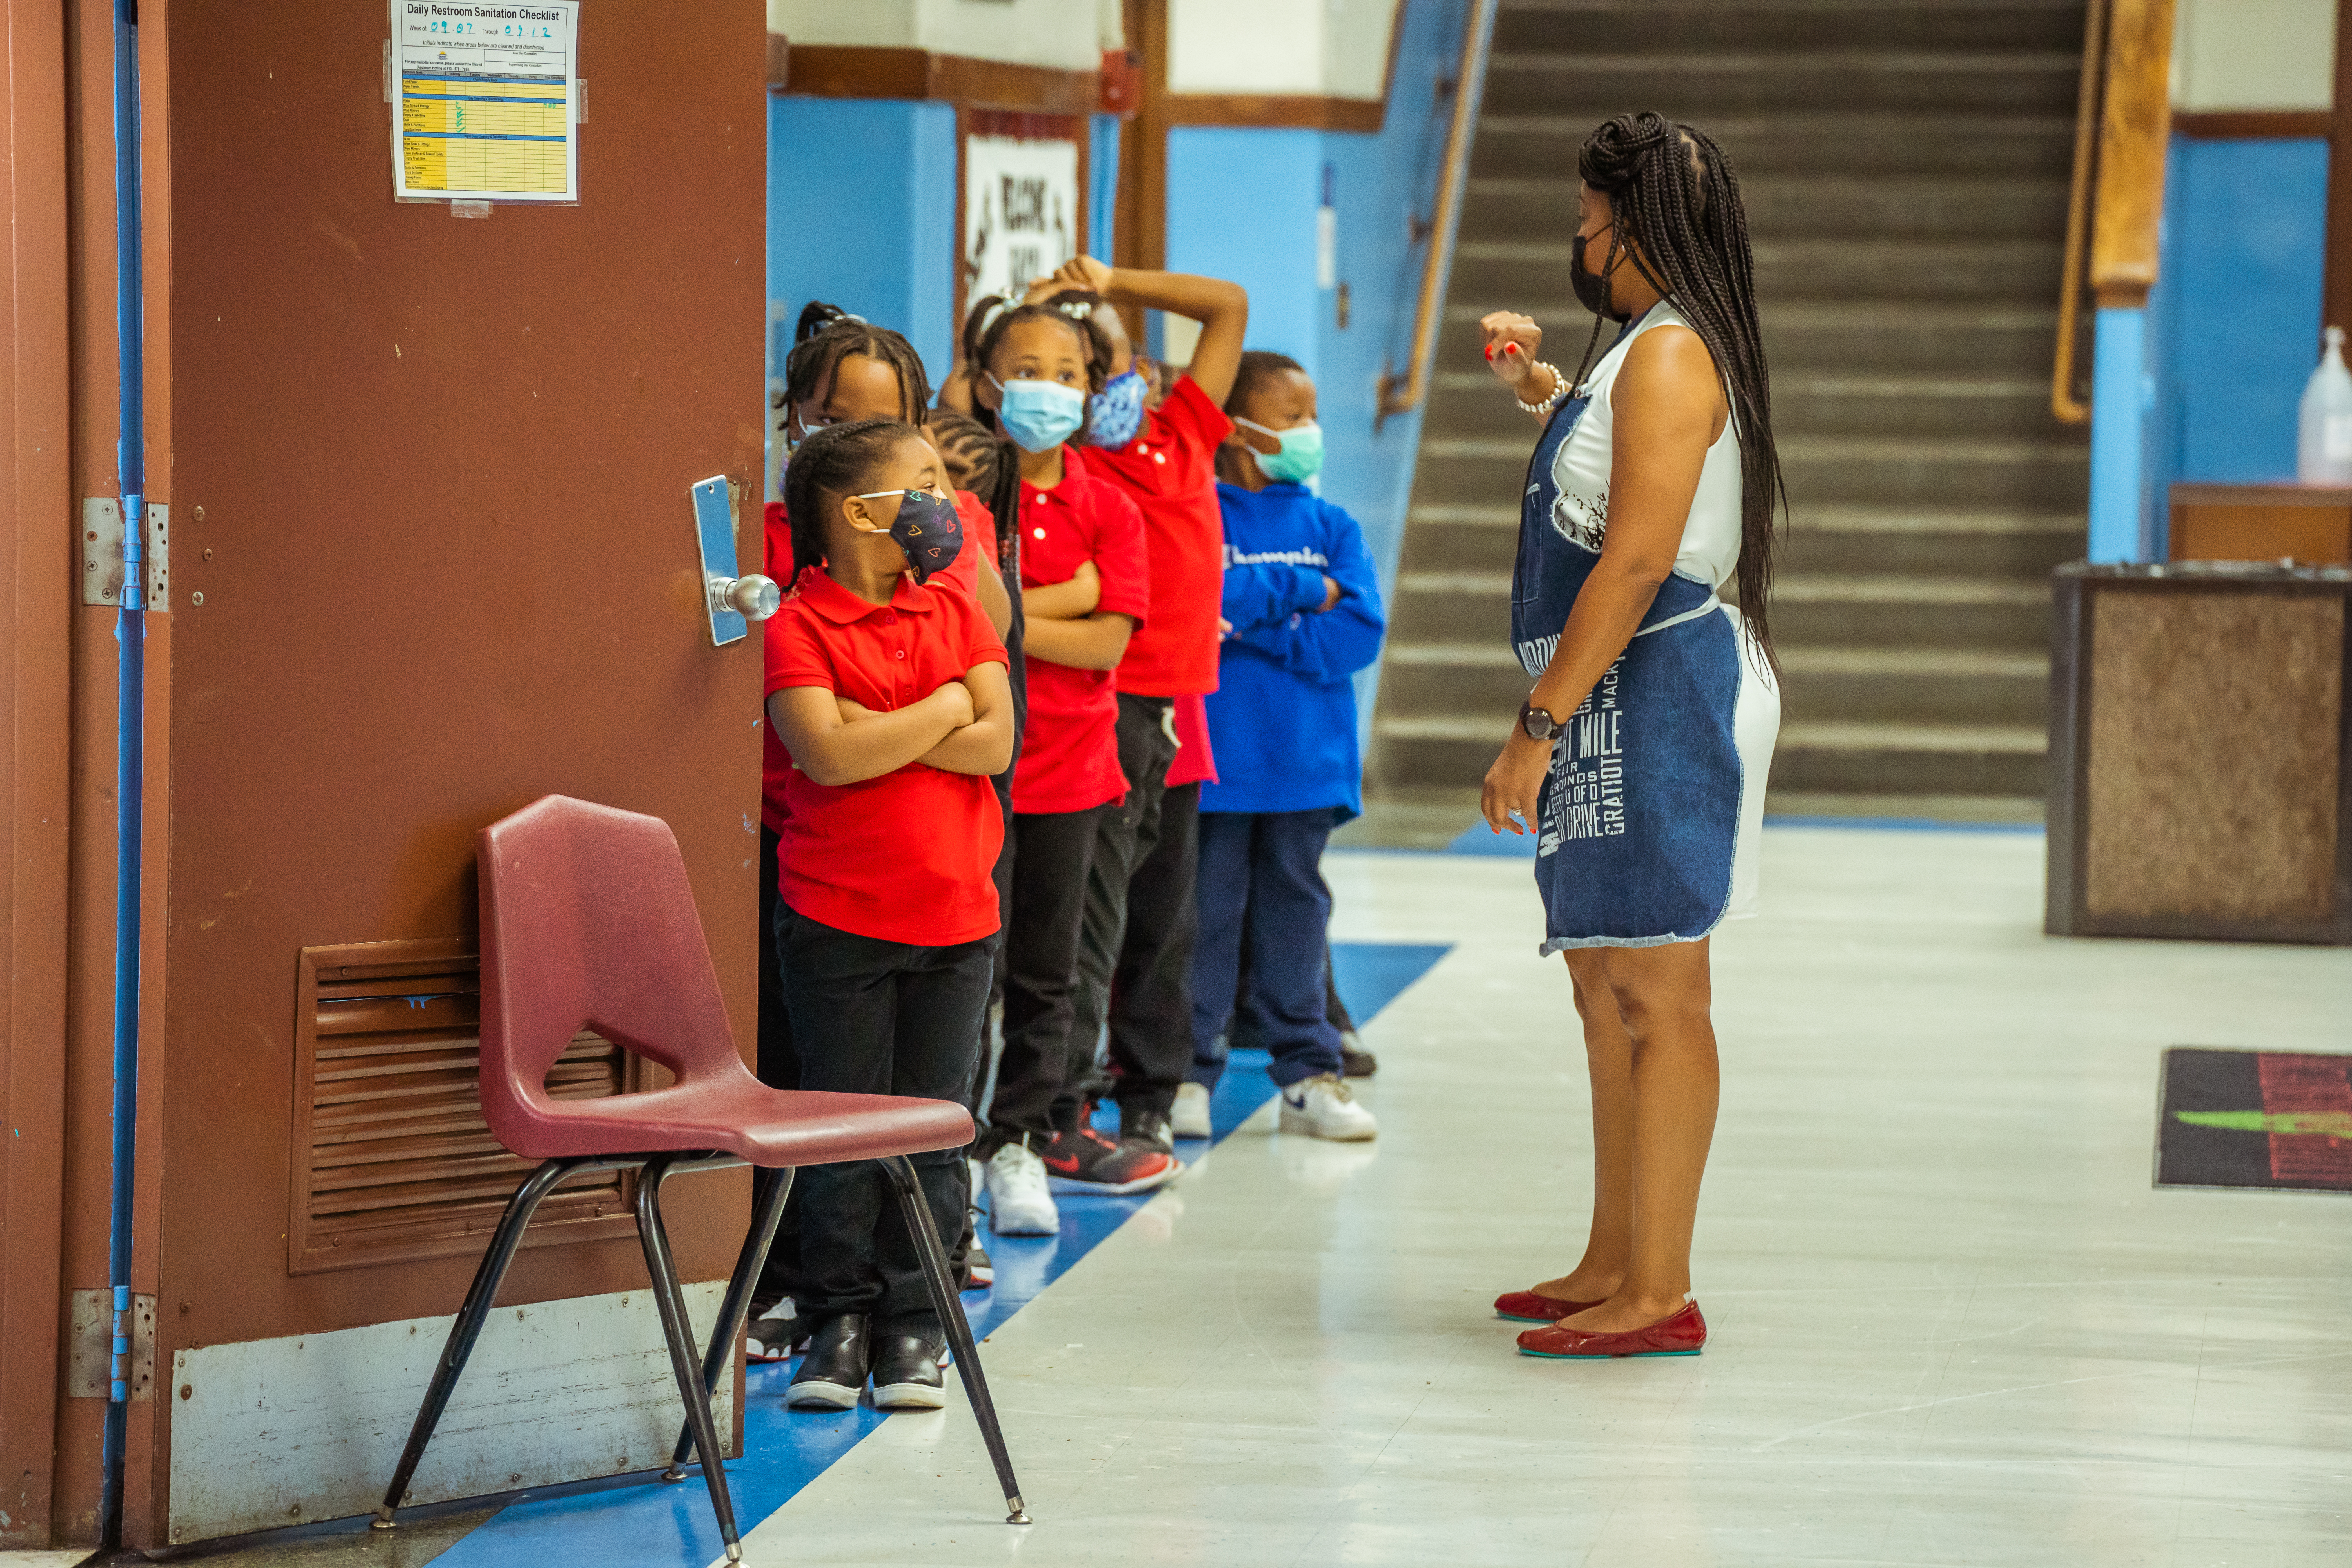 Students form in single-file line as a teacher provides instructions in a school hallway.